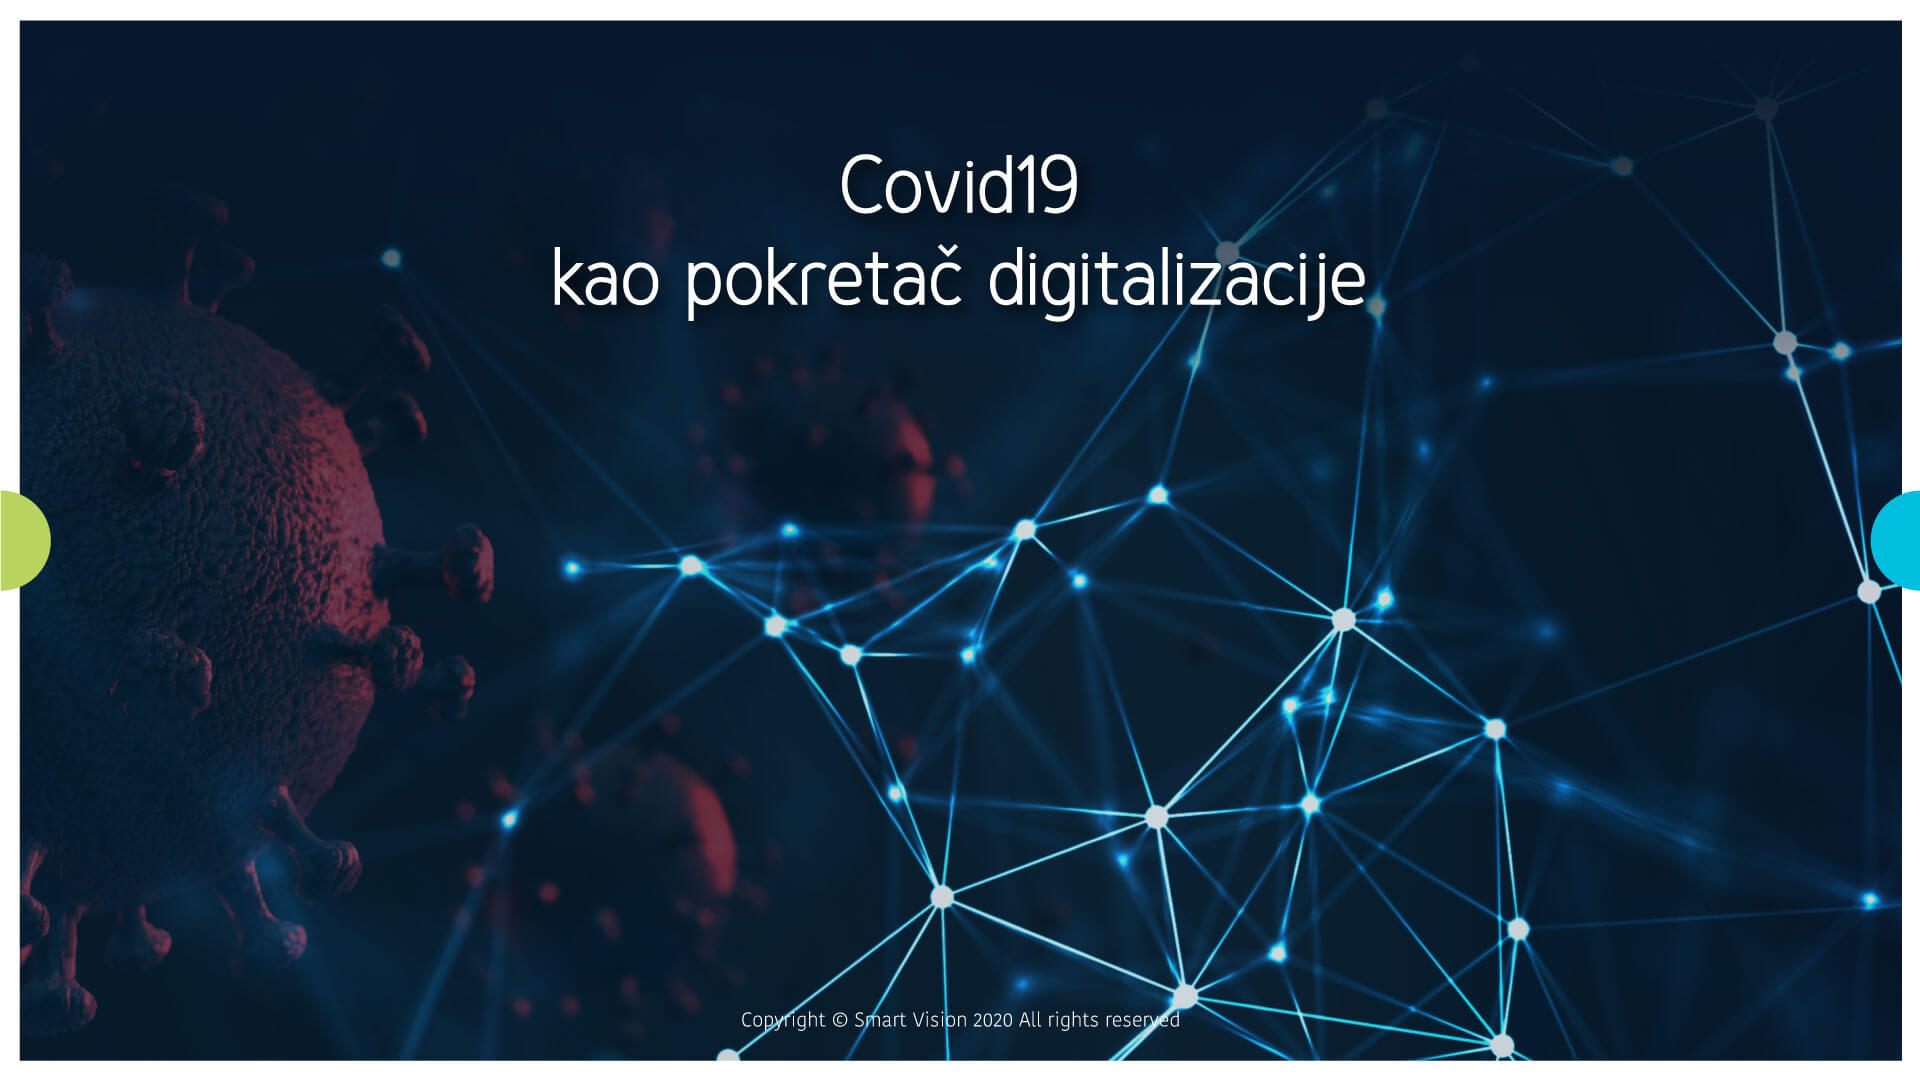 Smart Vison blog - Covid19 kao pokretač digitalizacije